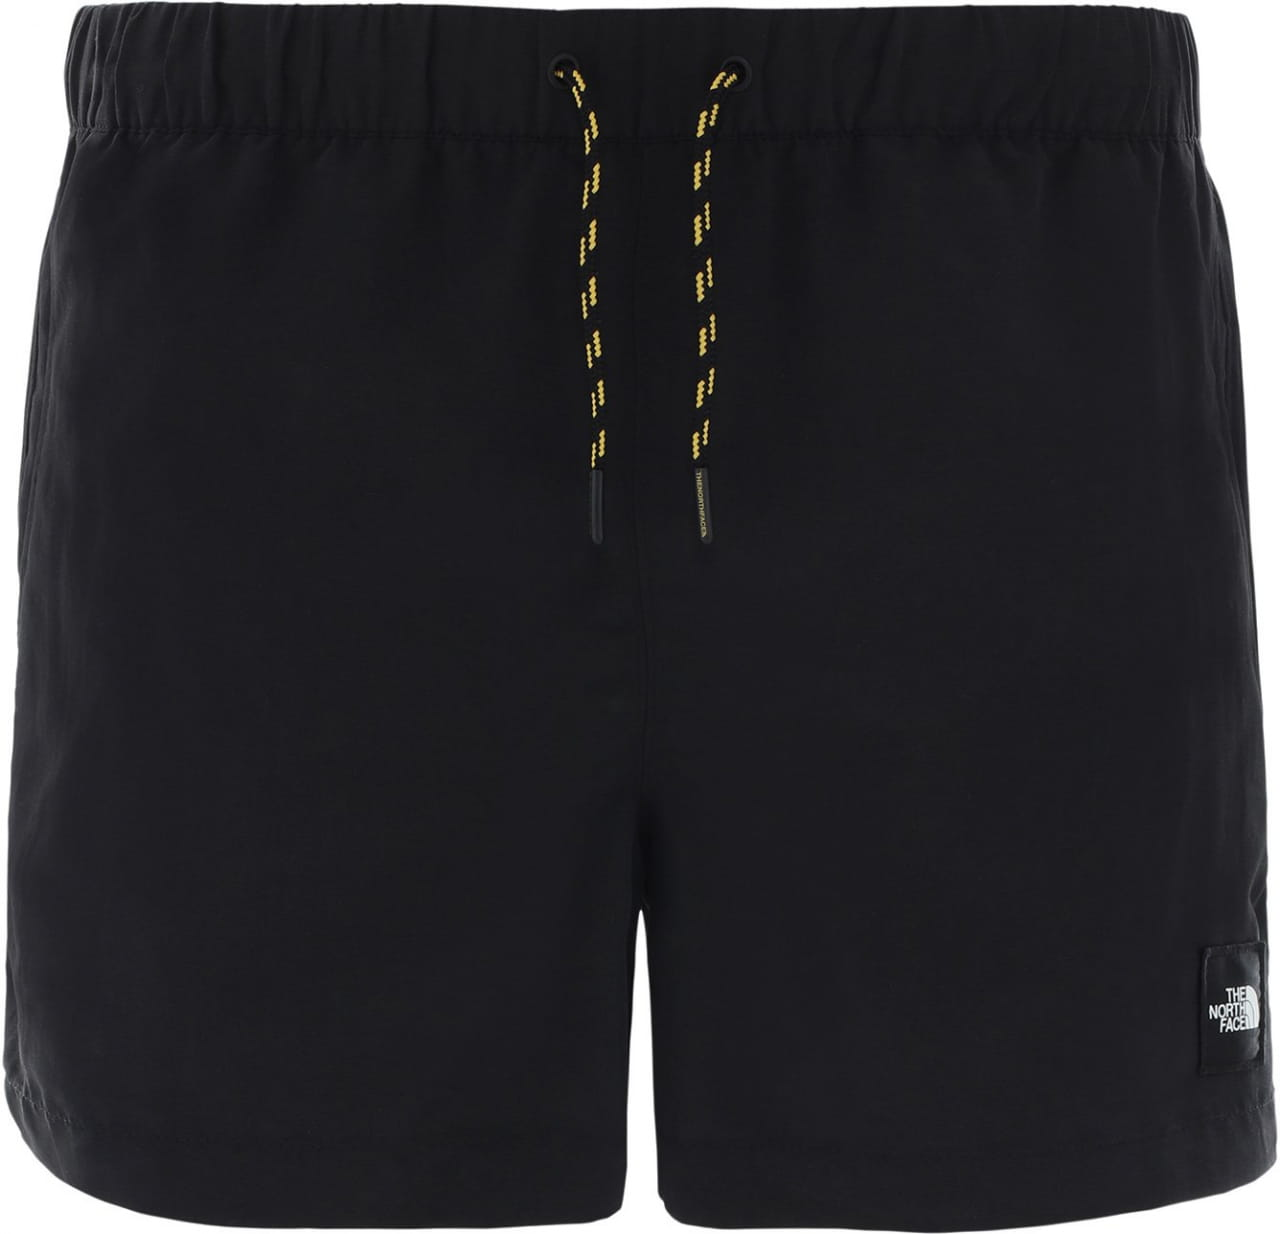 Shorts The North Face Men's Masters Of Stone Shorts